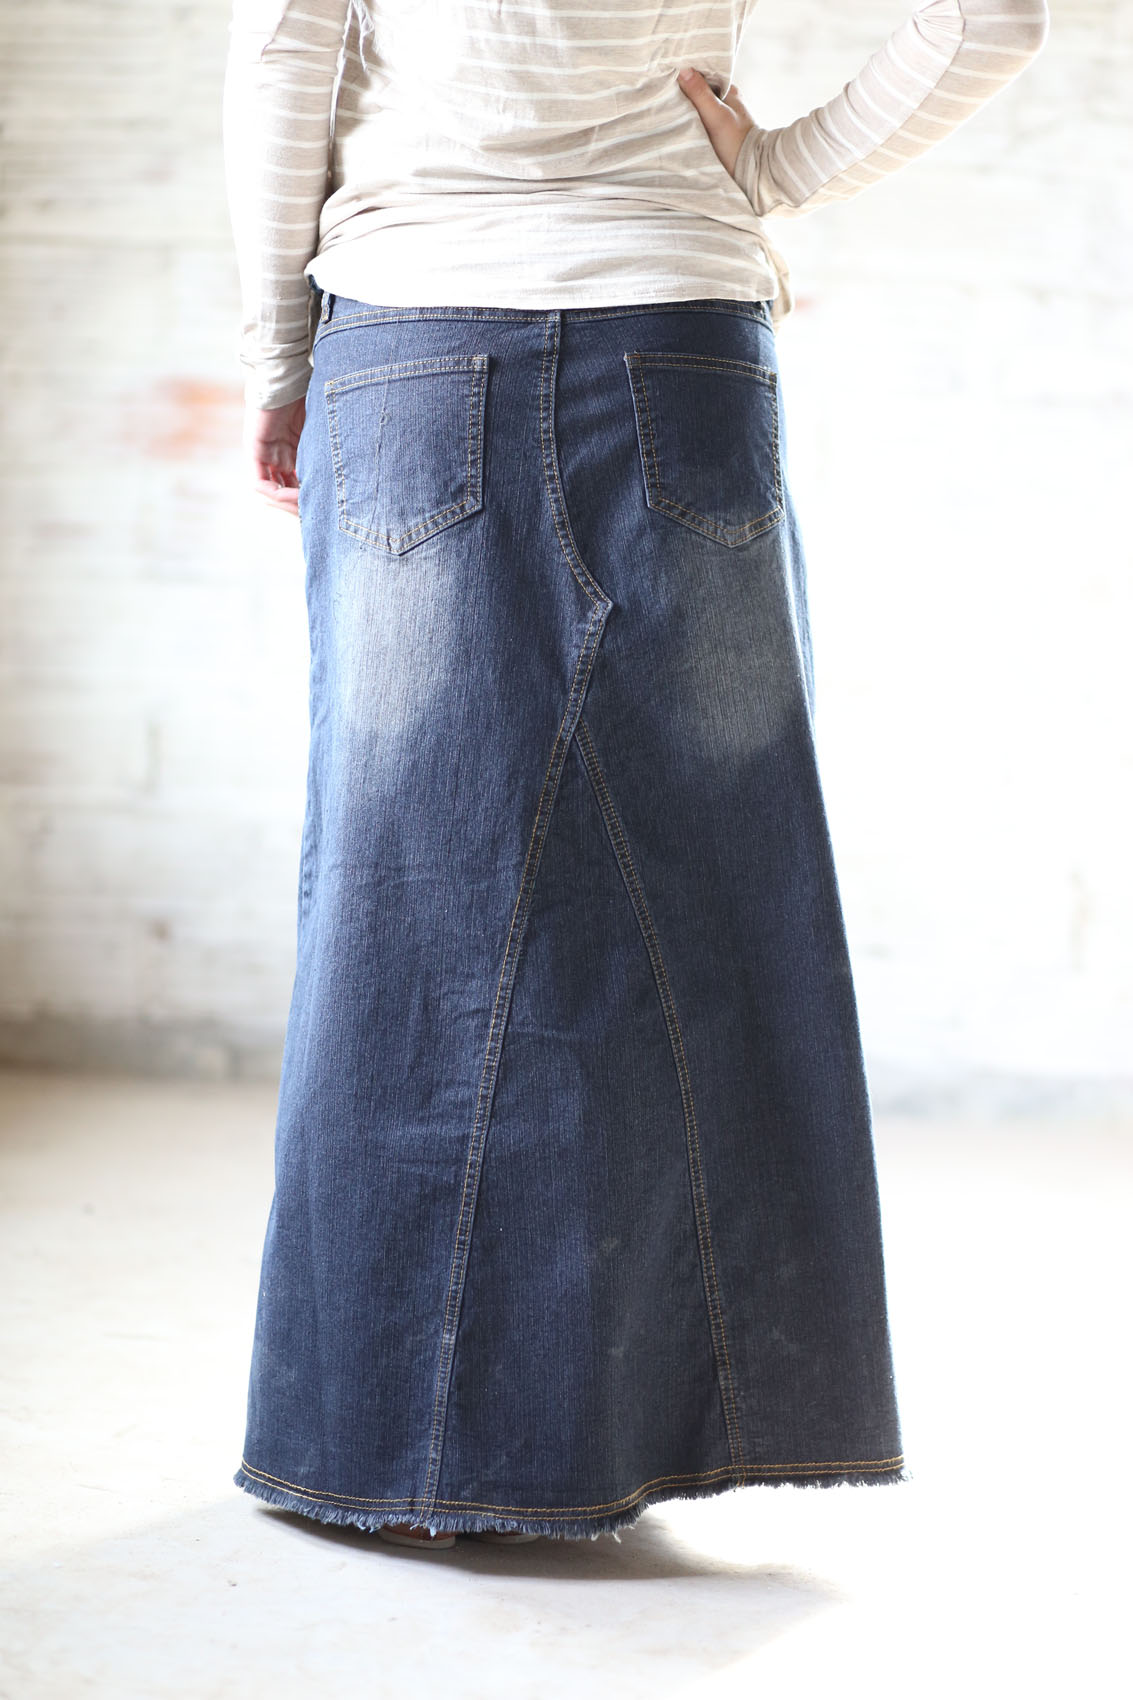 A-line Dark Long Jean Skirt | Petite Length Denim Skirt Sizes 4-20